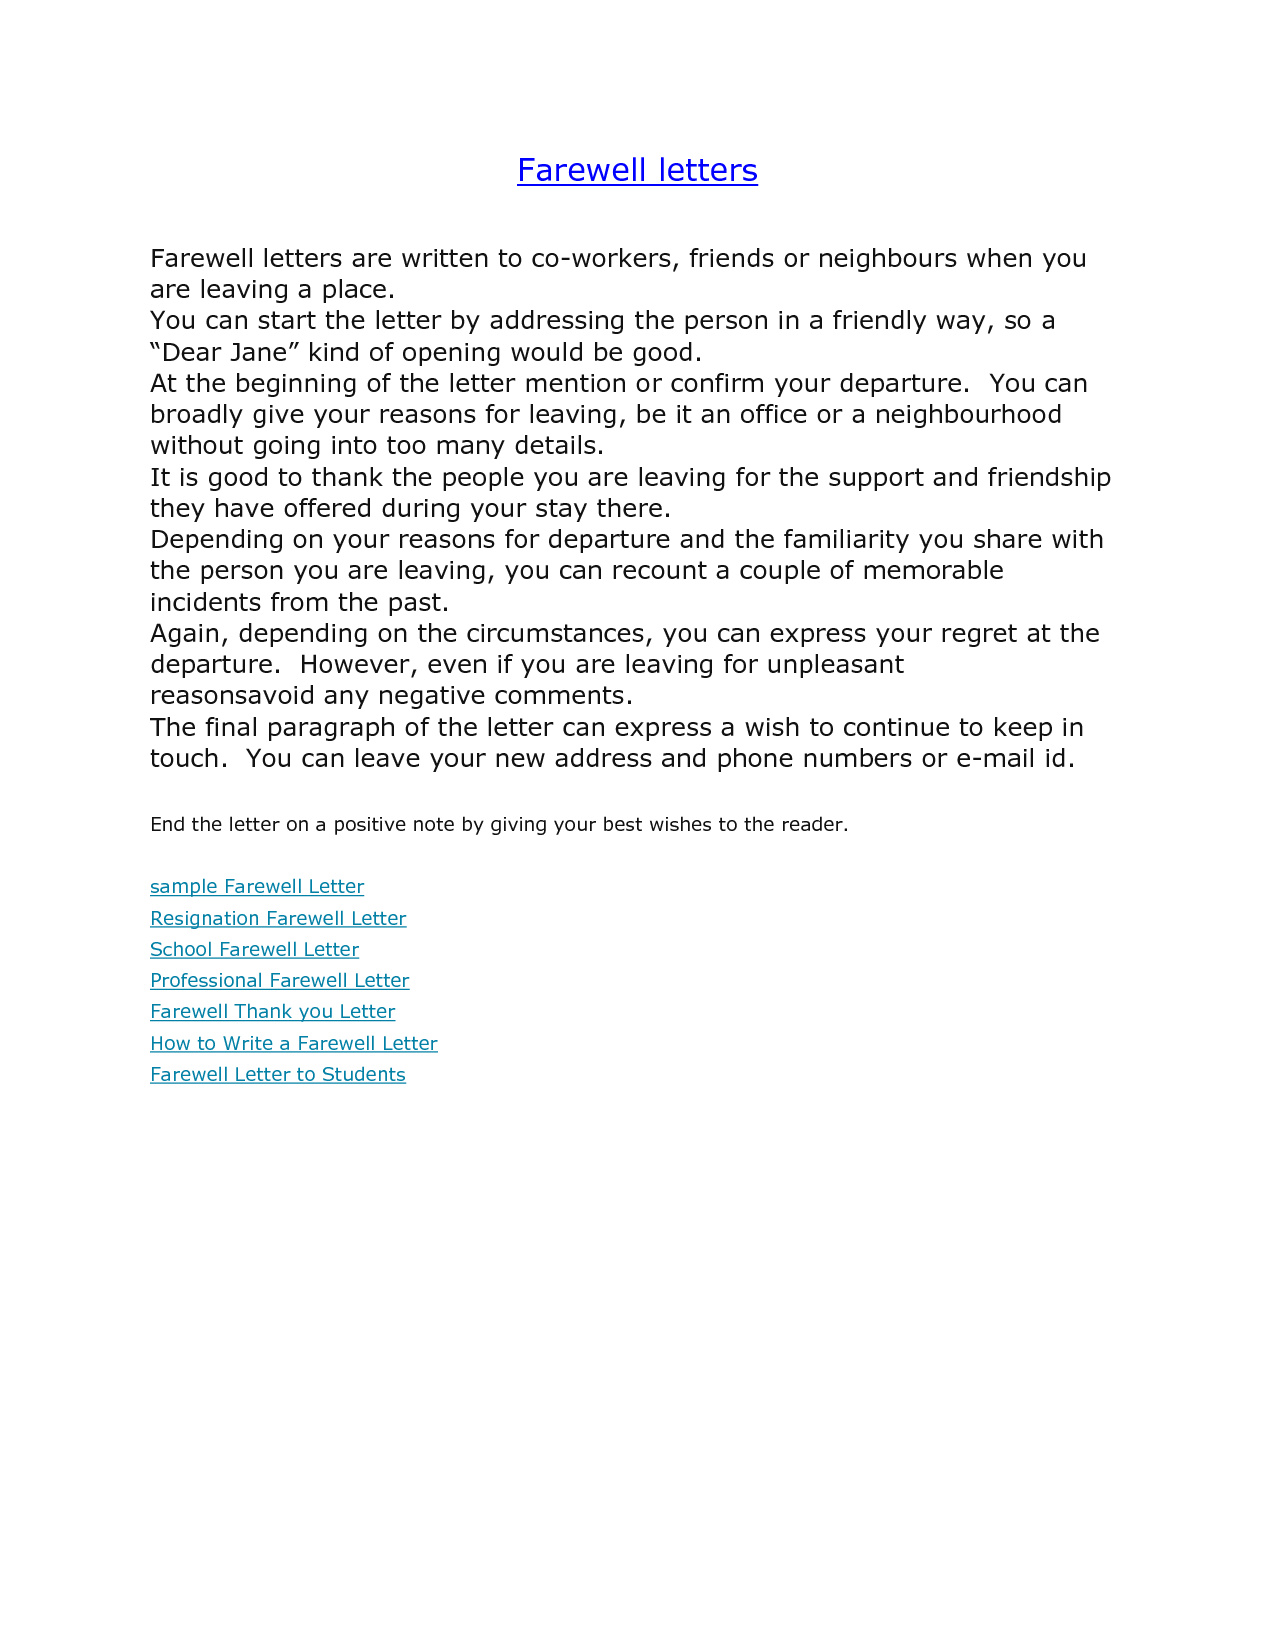 Farewell letter to coworkers samples funny docoments ojazlink apology letter prinl apologize doc former west sample goodbye thecheapjerseys Choice Image